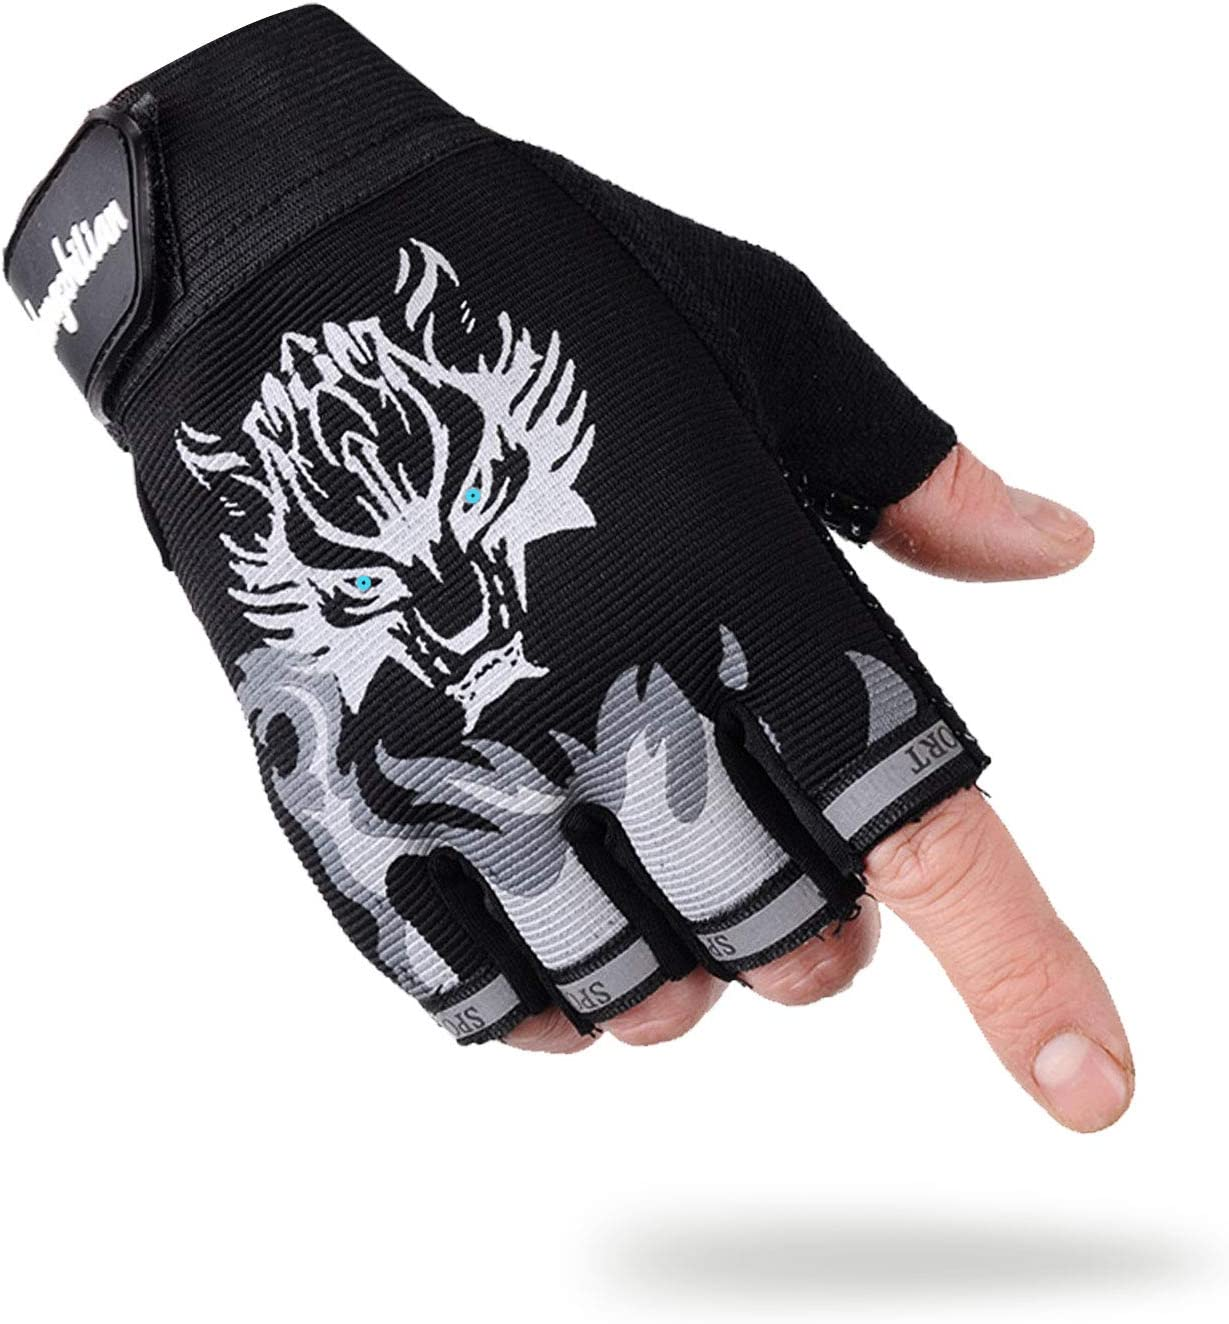 Kids Gloves Microfiber Non-Slip Sports Roller-Skating Outdoor Breathable Half Finger Skateboard Bike Cycling Padded Soft Gloves for Boys Girls